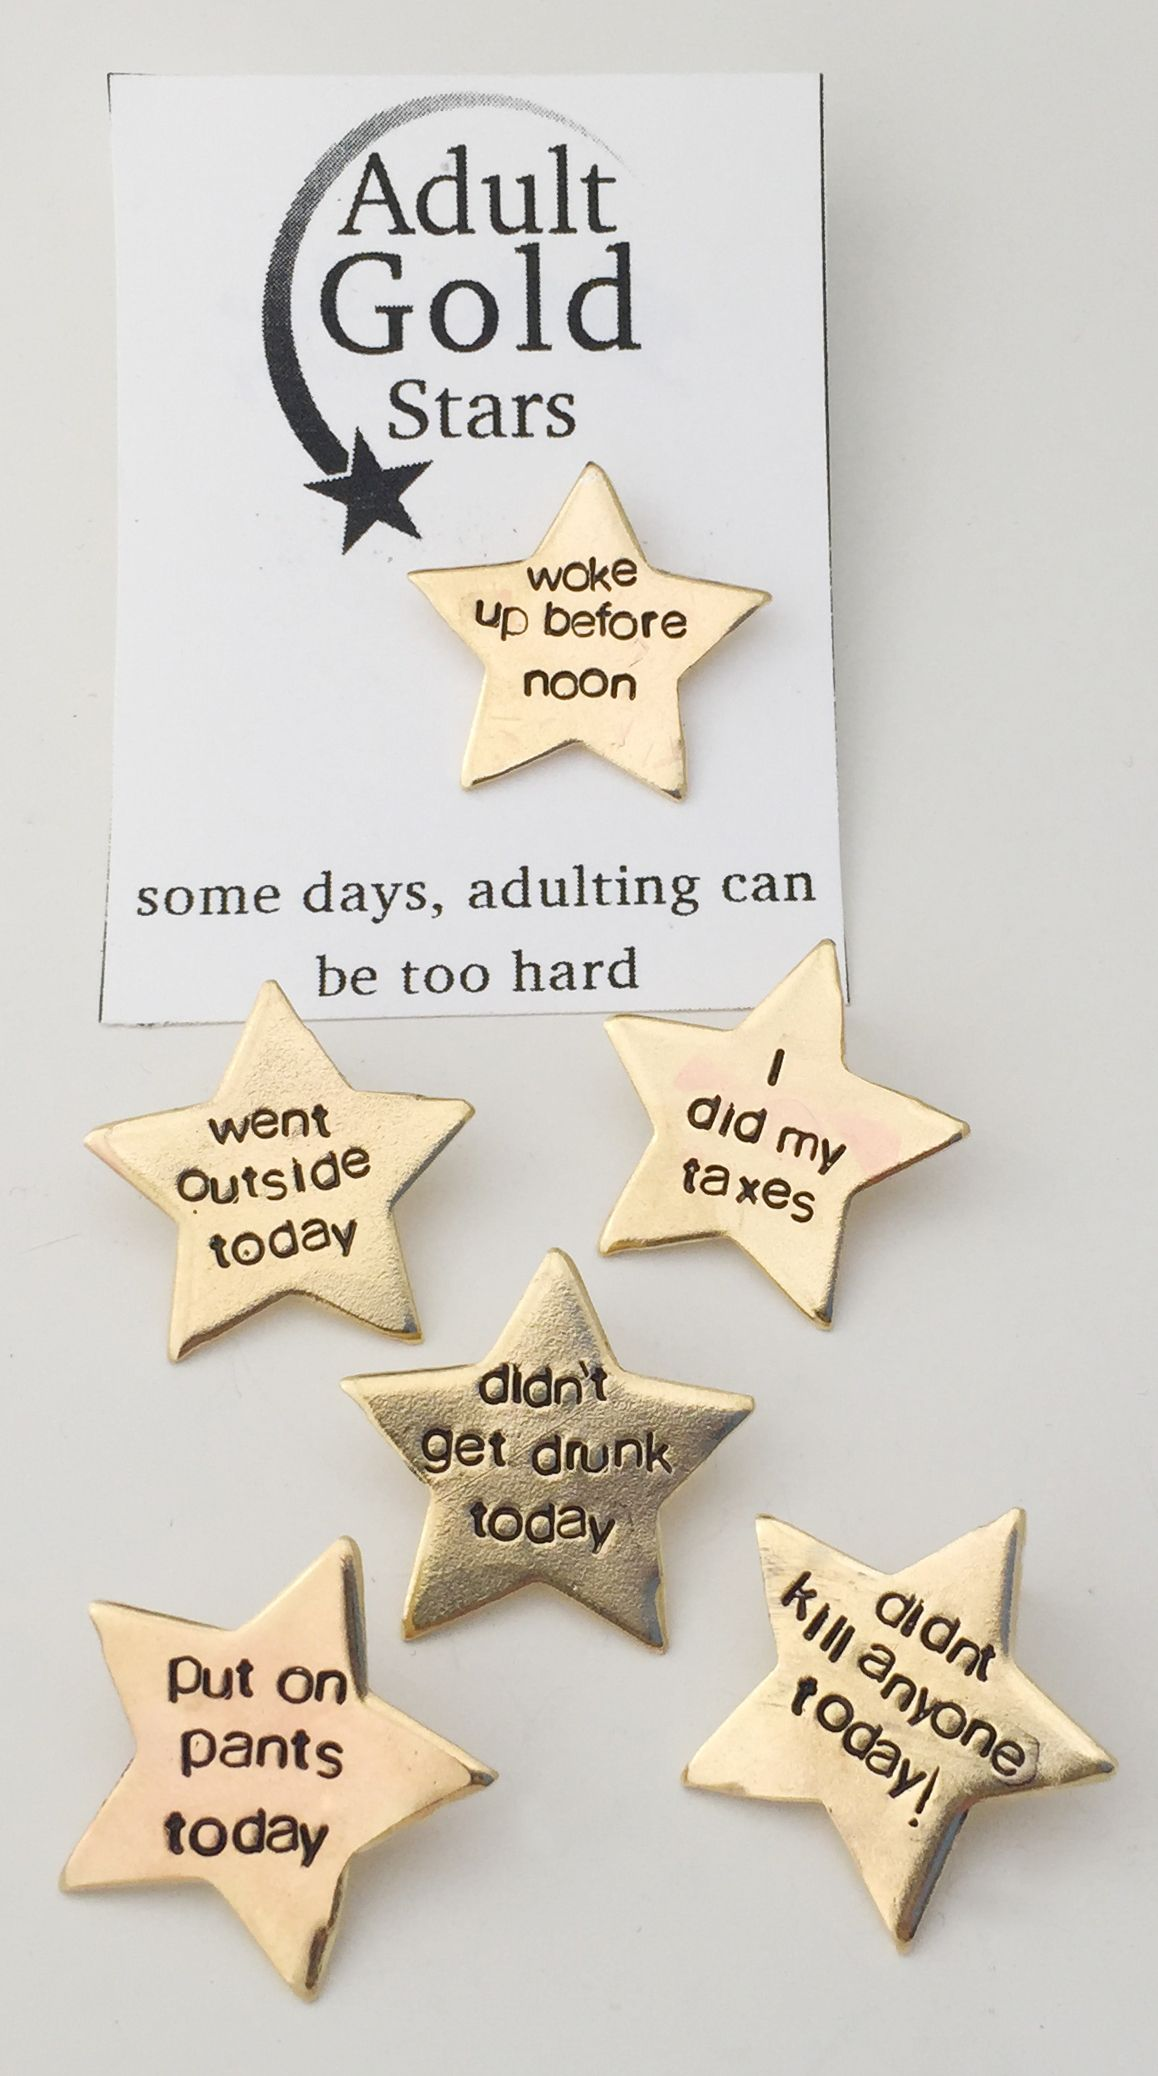 Adulting Gold Stars Because Sometimes Even You Deserve A Star